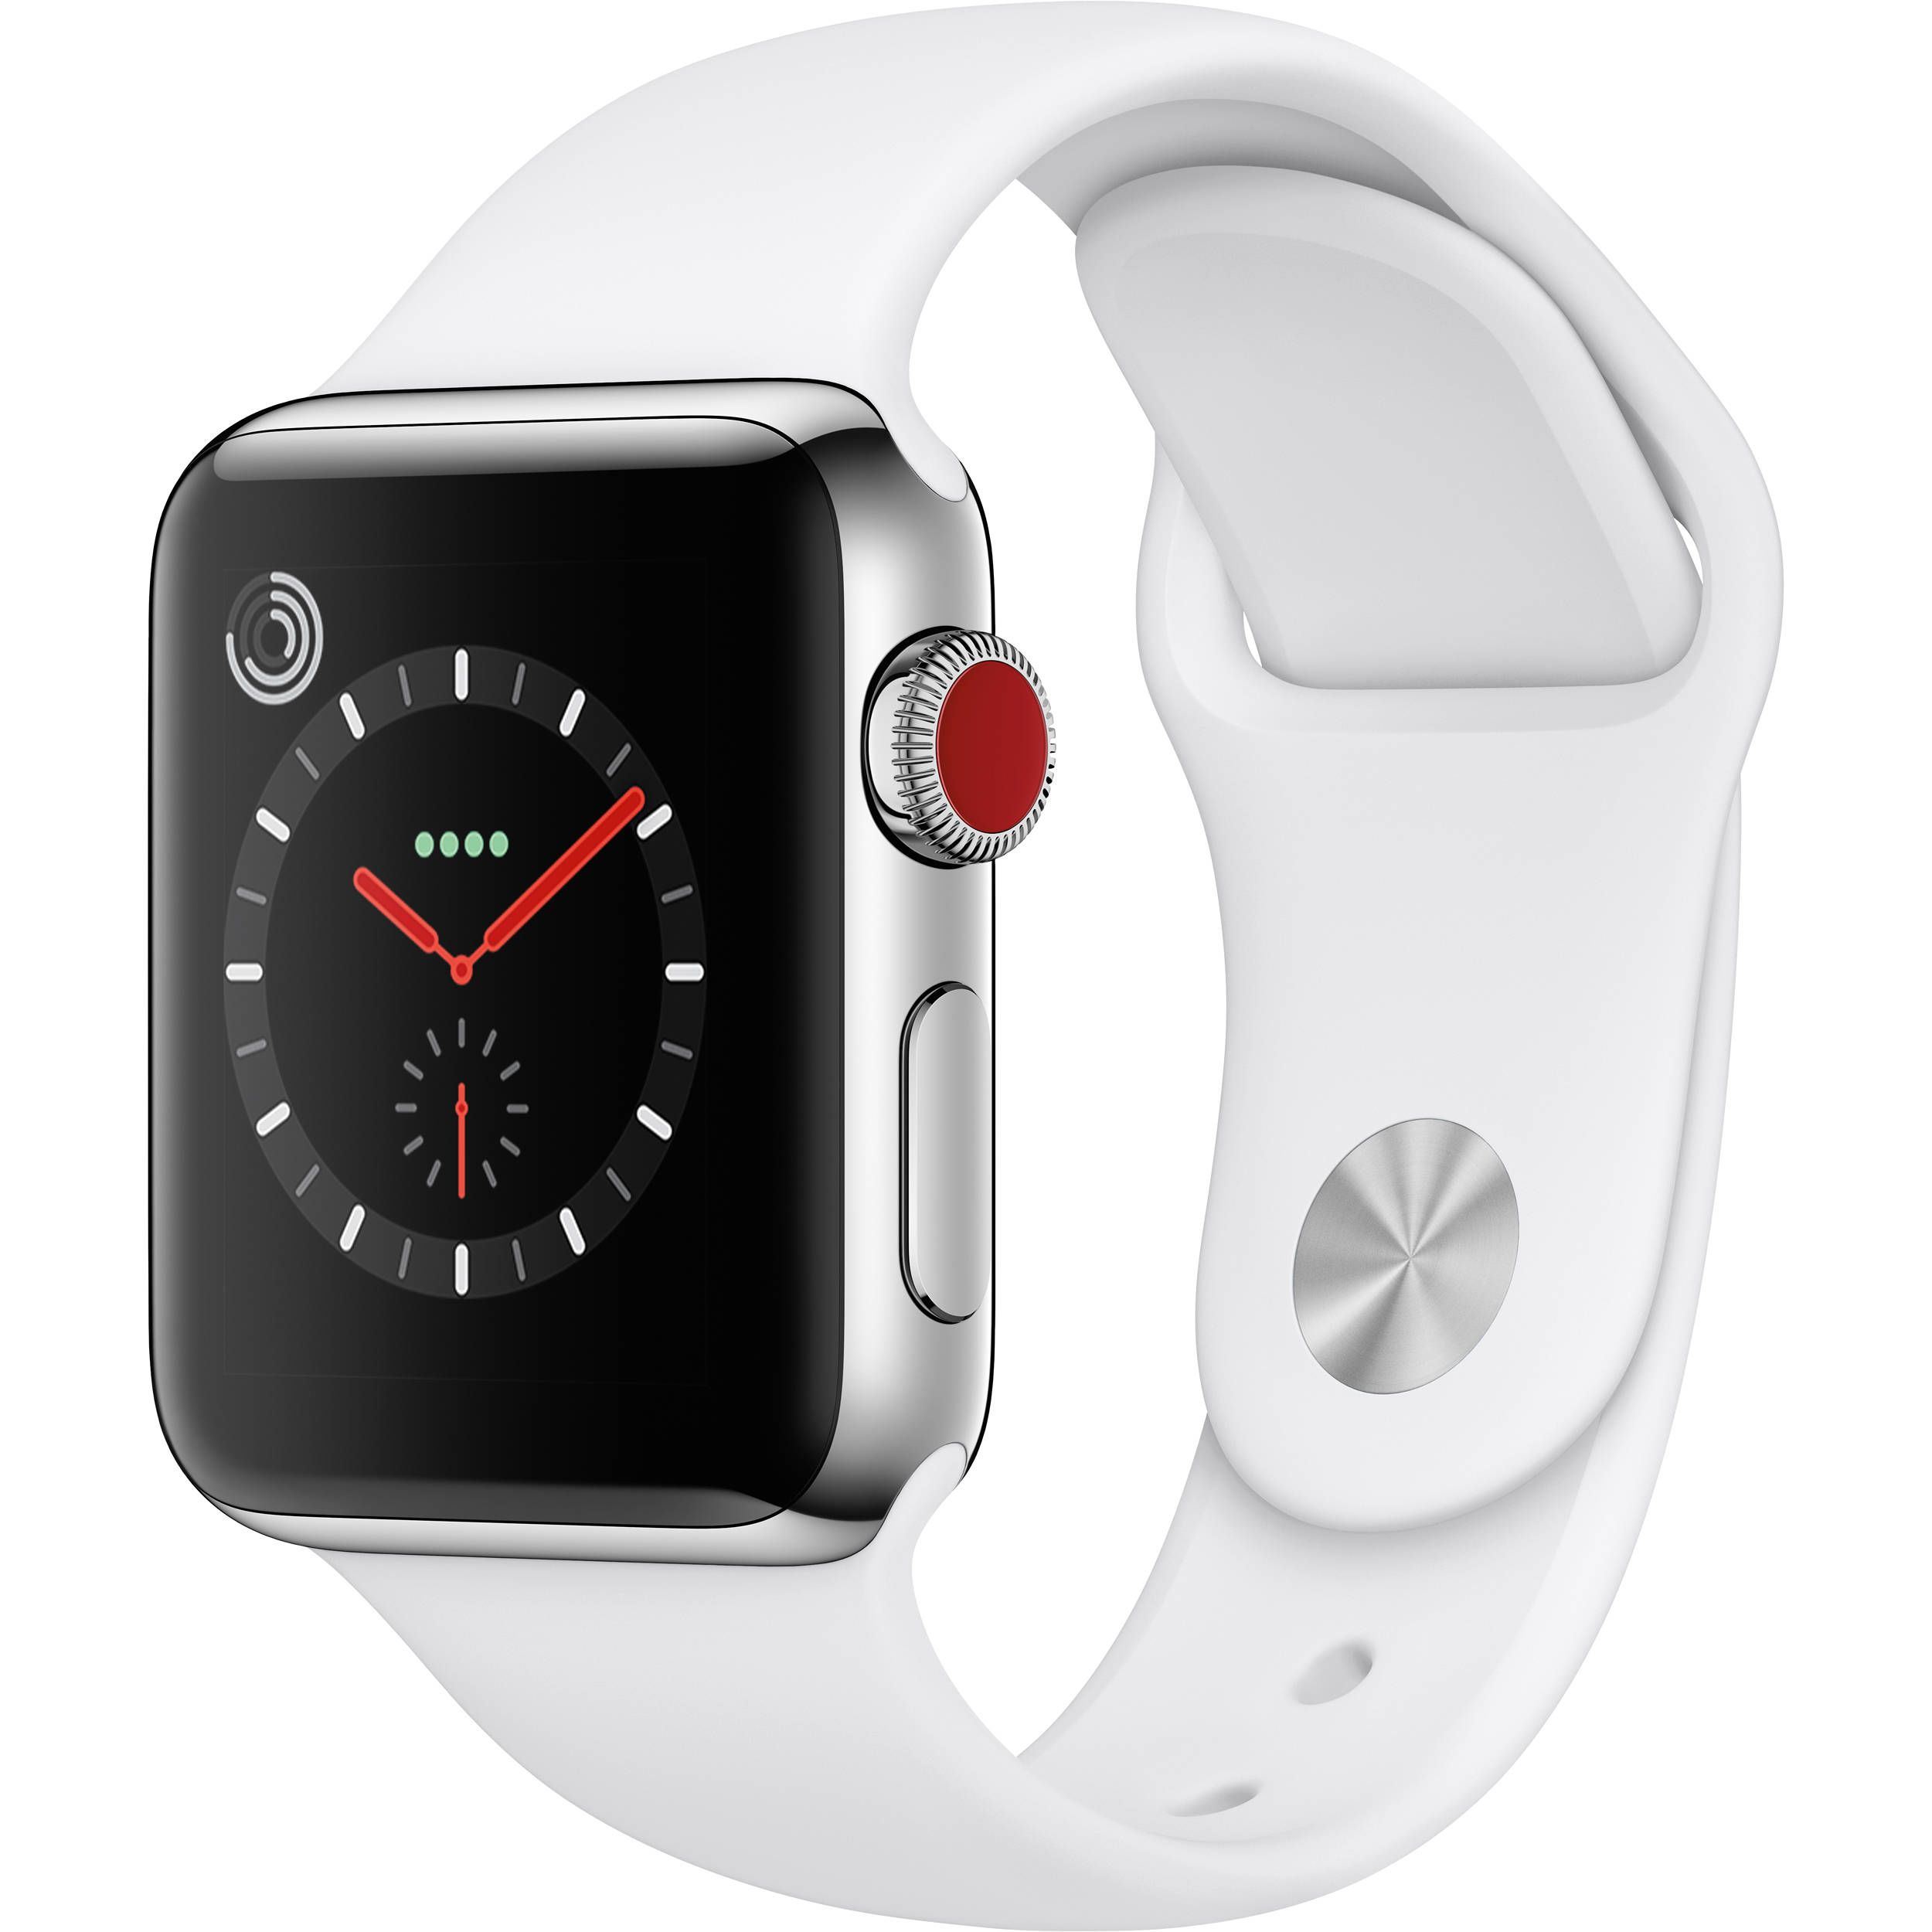 Apple Watch Series 3 Space Gray Aluminum Case W/ Black